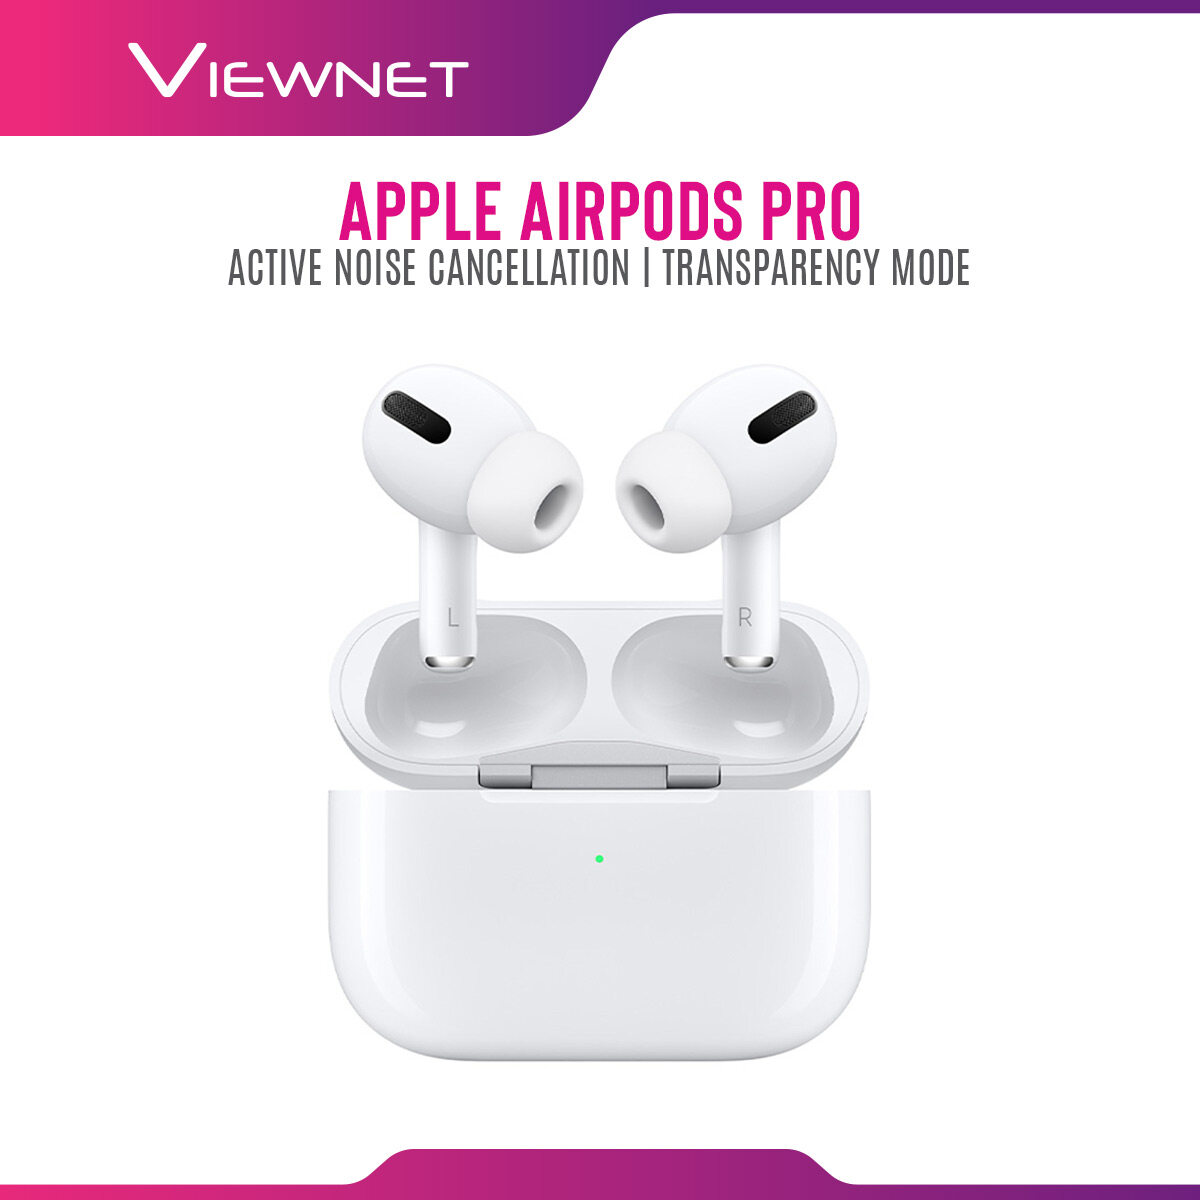 (Ready Stock) Apple AirPods Pro Wireless Earbuds with Charging Case & Active Noise Cancellation MWP22ZA/A - Original Apple Malaysia Warranty 1 Year